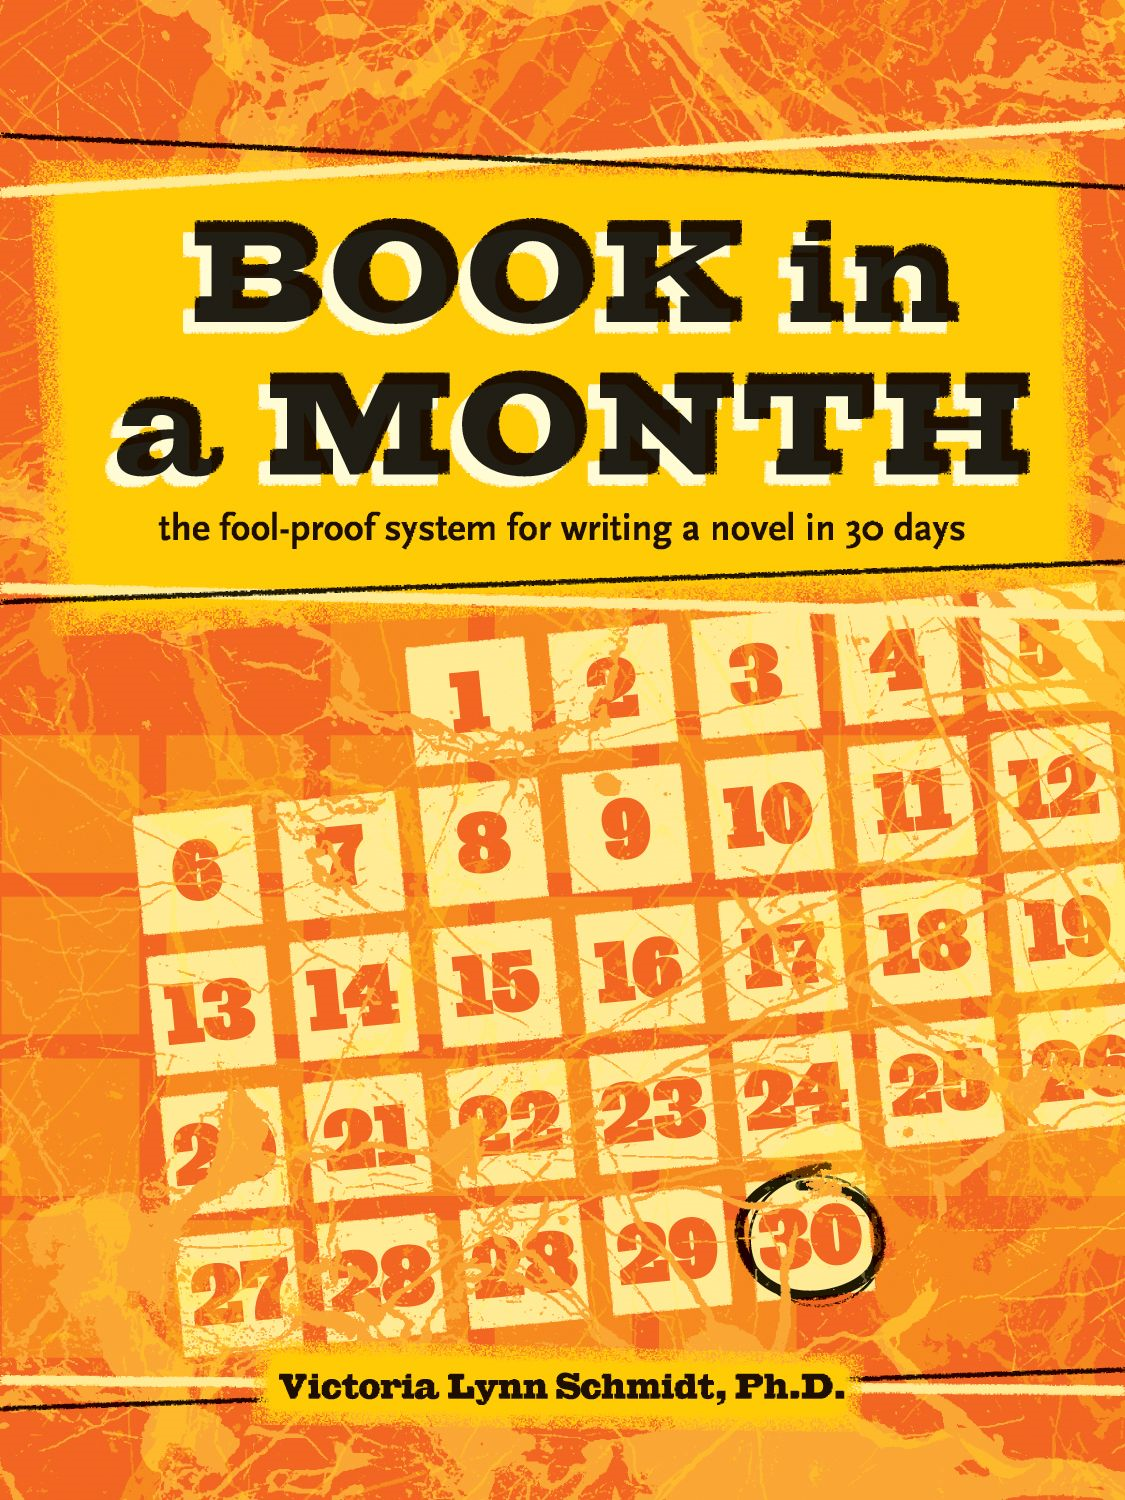 Book in a Month: The Fool-Proof System for Writing a Novel in 30 Days